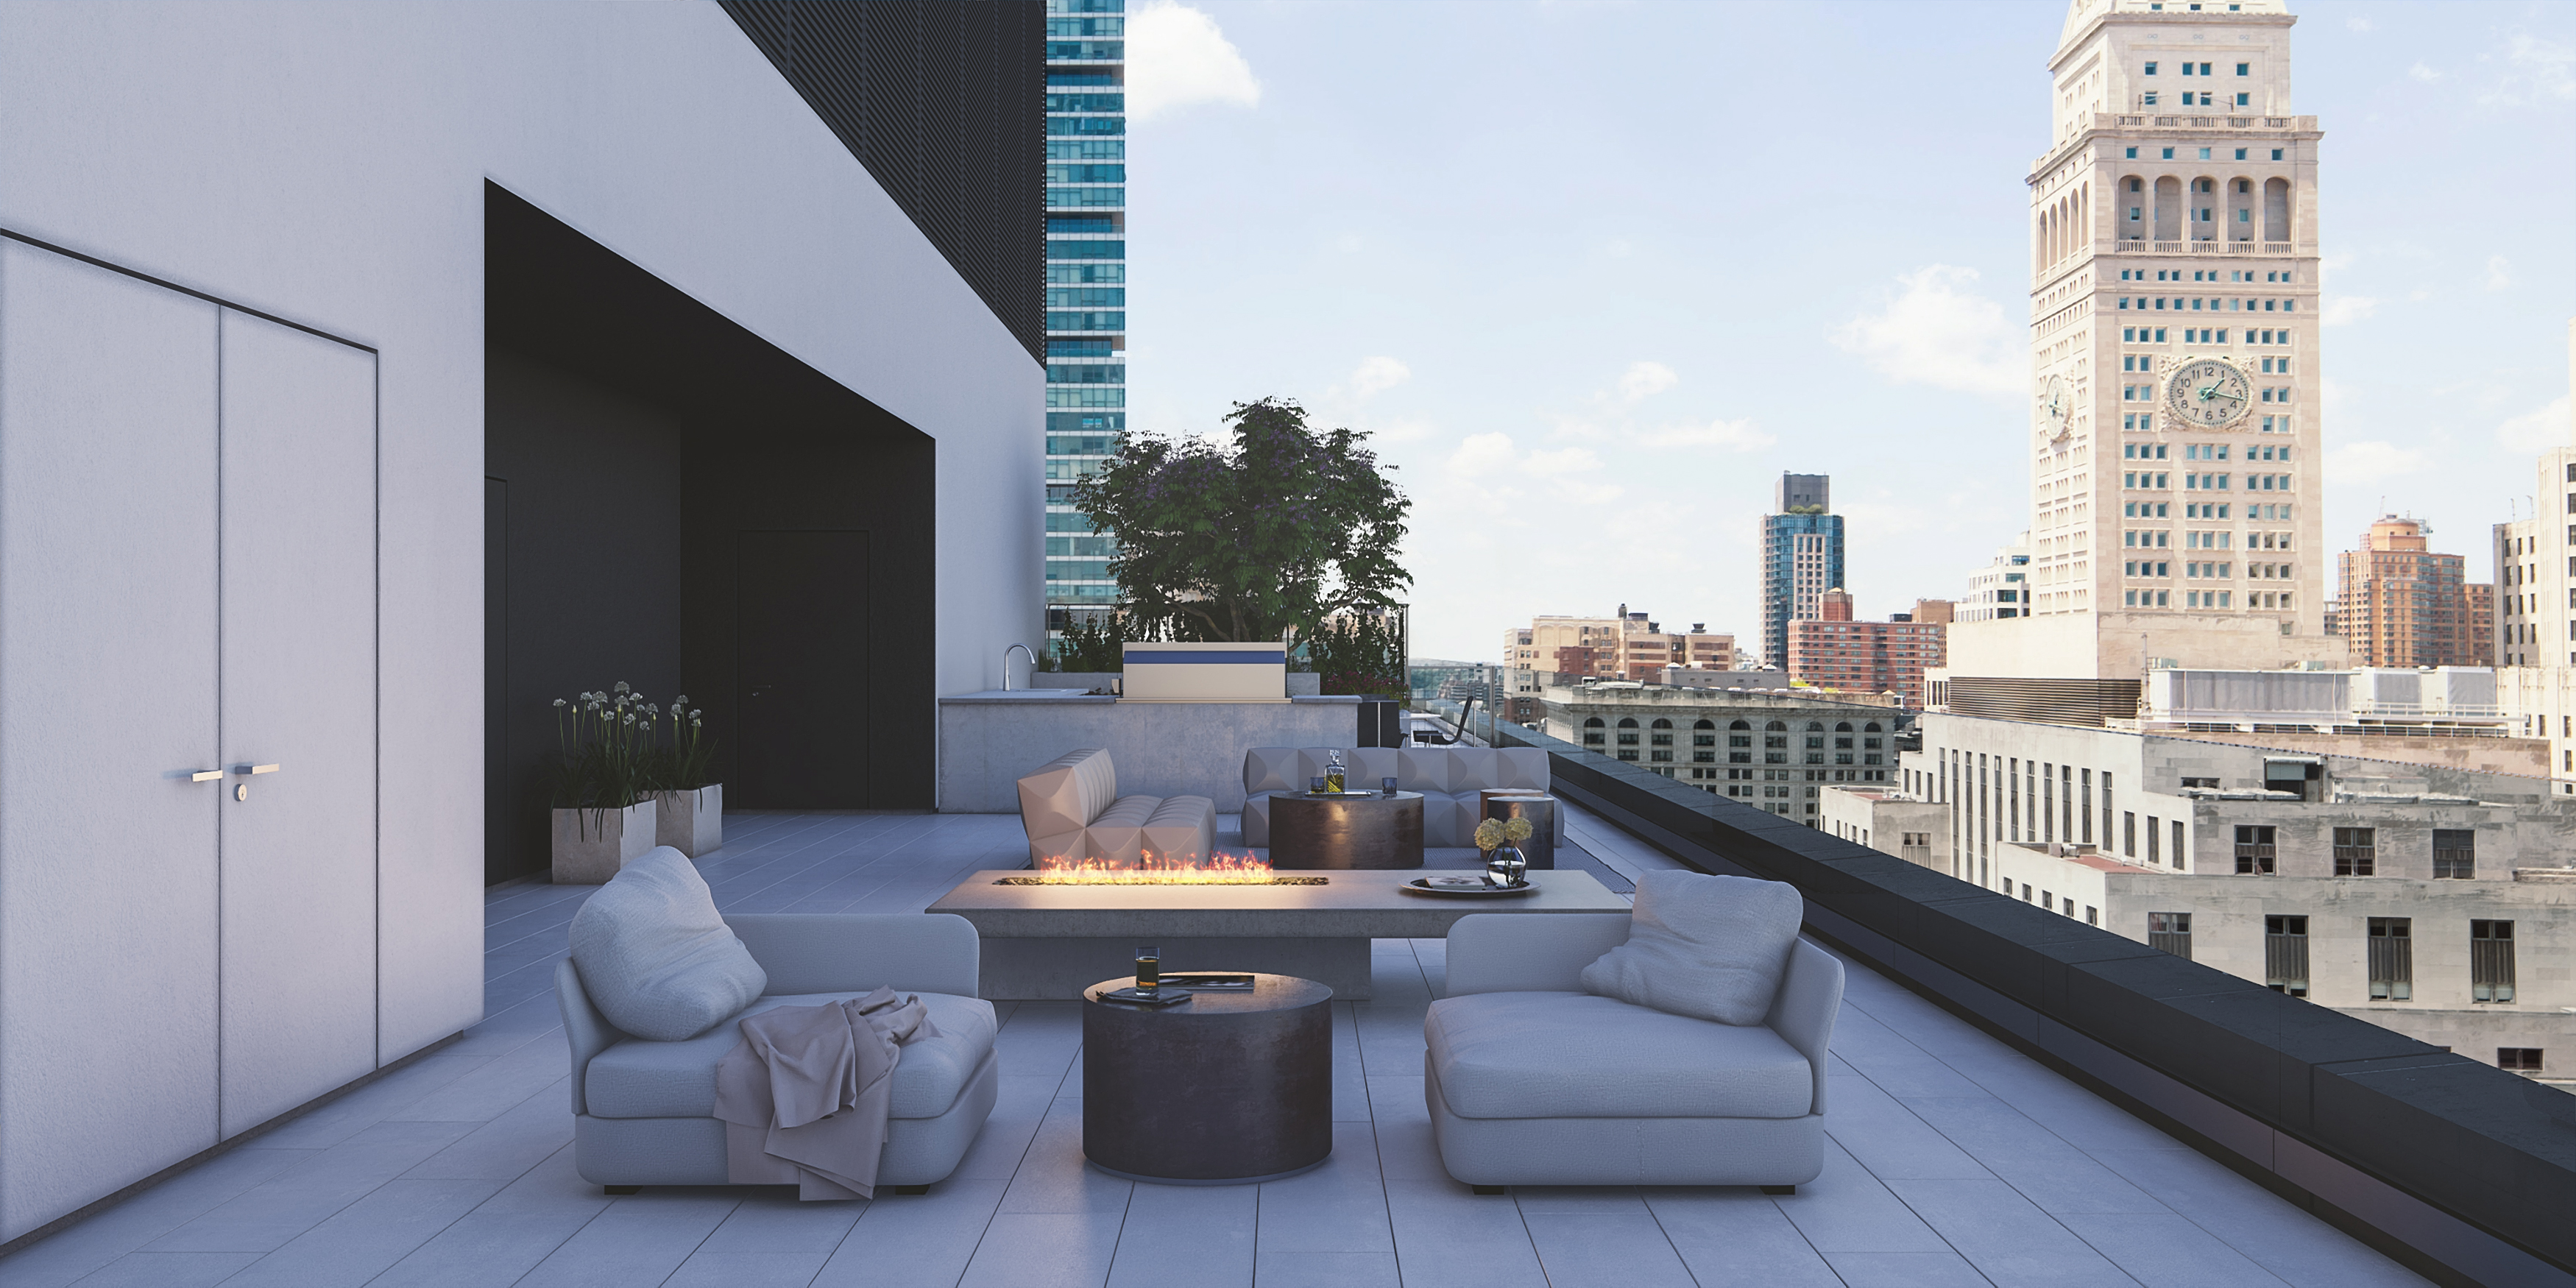 Terrace, with a fire pit, on a condo building in New York.